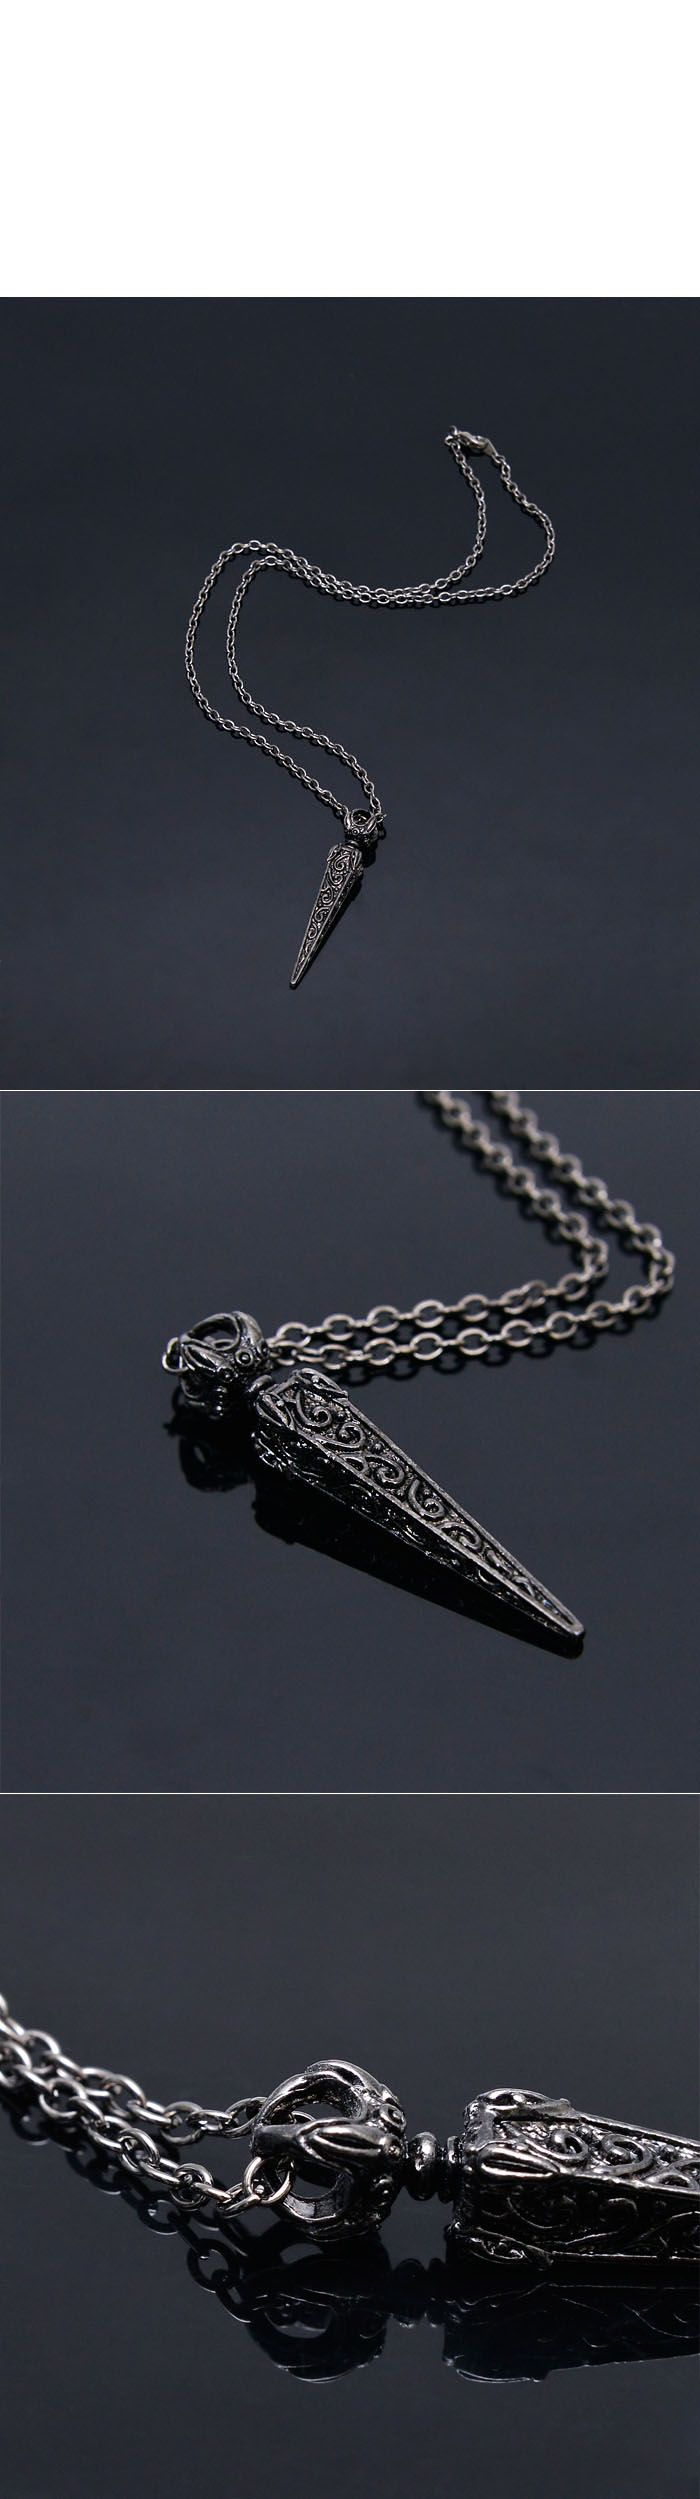 Accessories :: Necklaces :: Antique Engraving Triangle Short-Necklace 225 - Mens Fashion Clothing For An Attractive Guy Look ~Don't Forget to Follow V.C.~